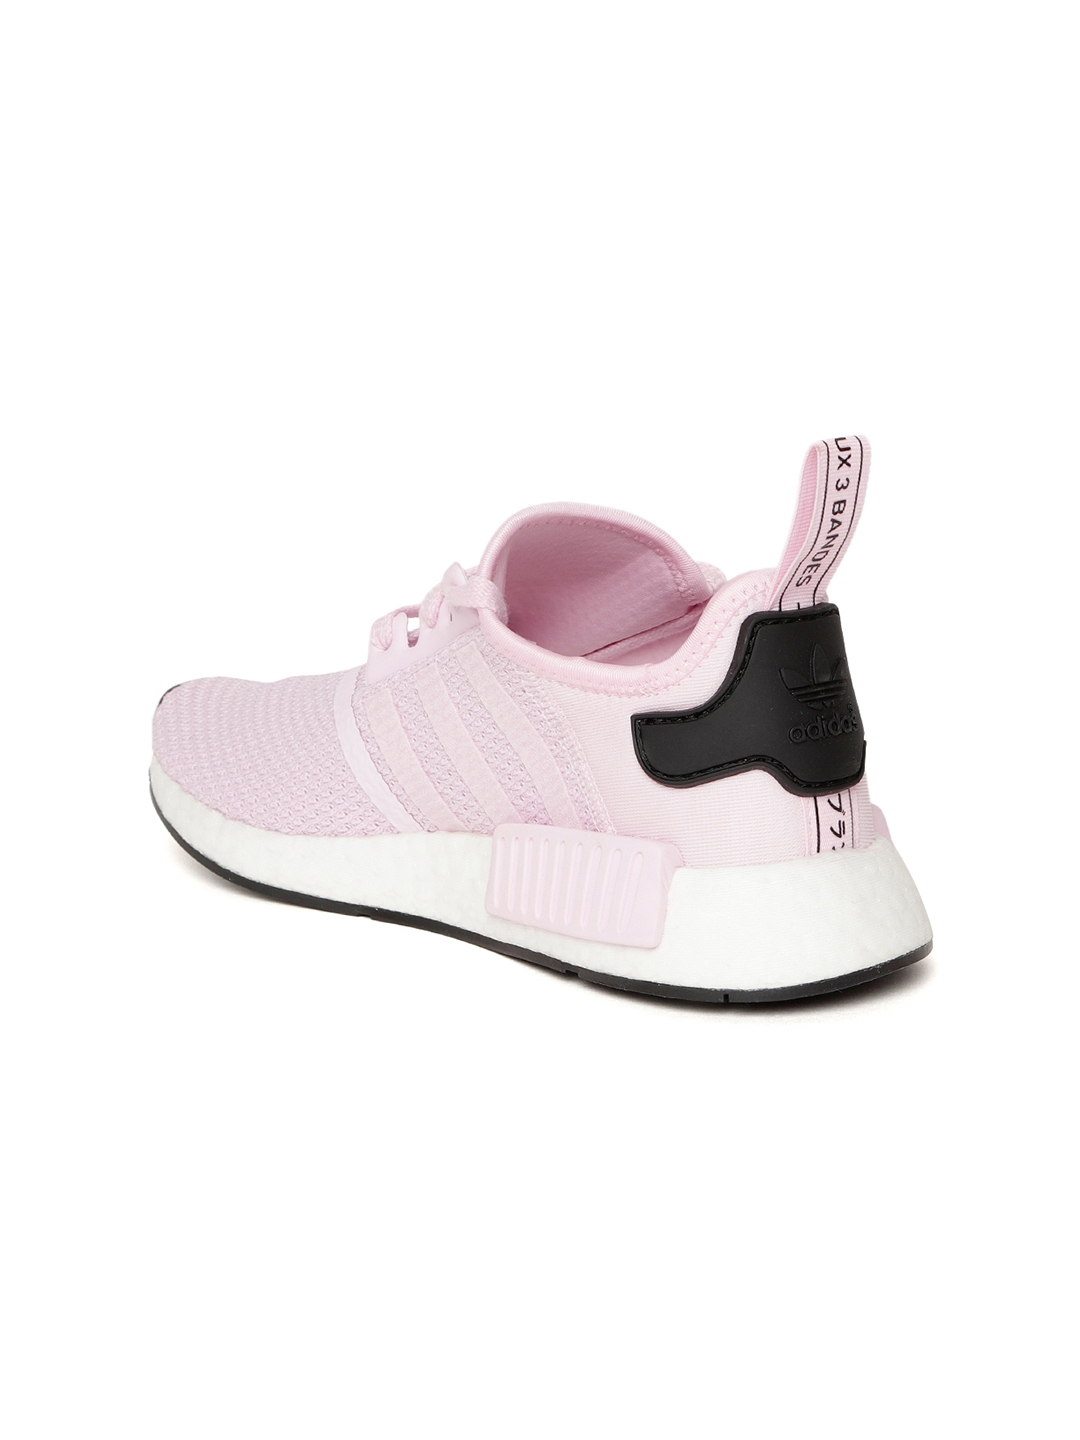 d04e65aefe99d Buy ADIDAS Originals Women Pink NMD R1 Sneakers - Casual Shoes for ...